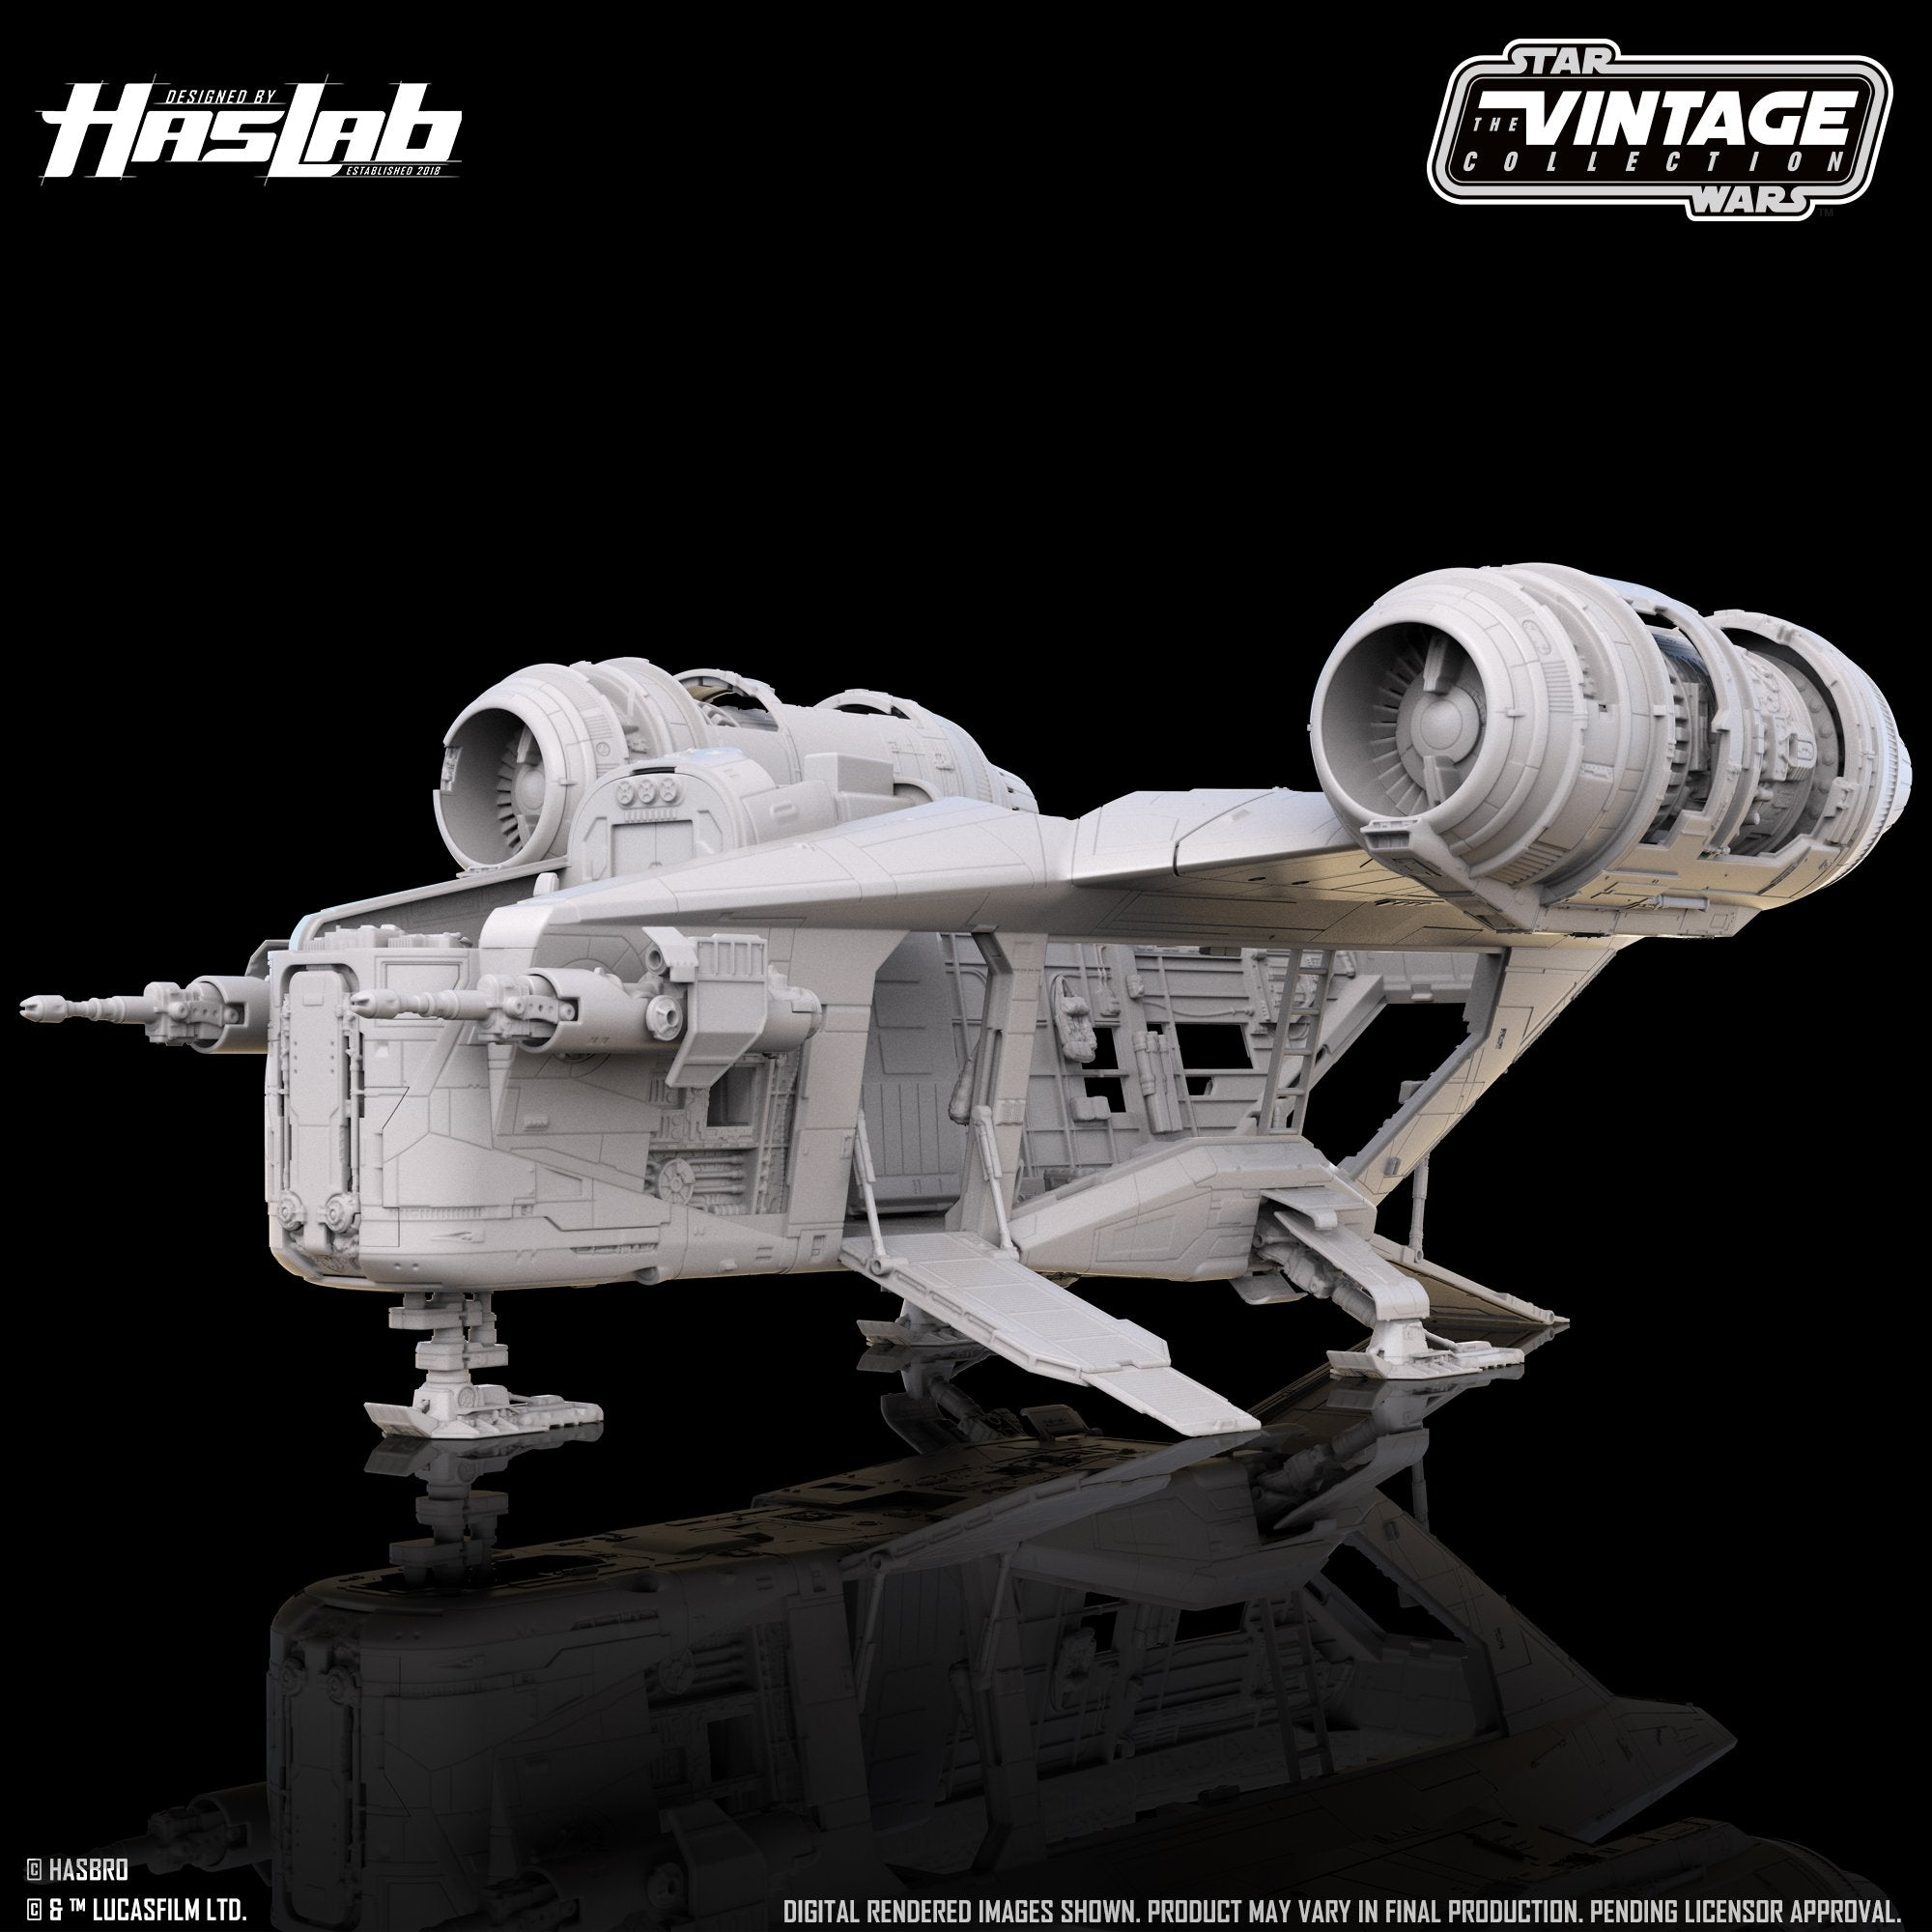 Hasbro - Star Wars: The Vintage Collection - The Mandalorian - Razor Crest (HasLab Crowdfund)